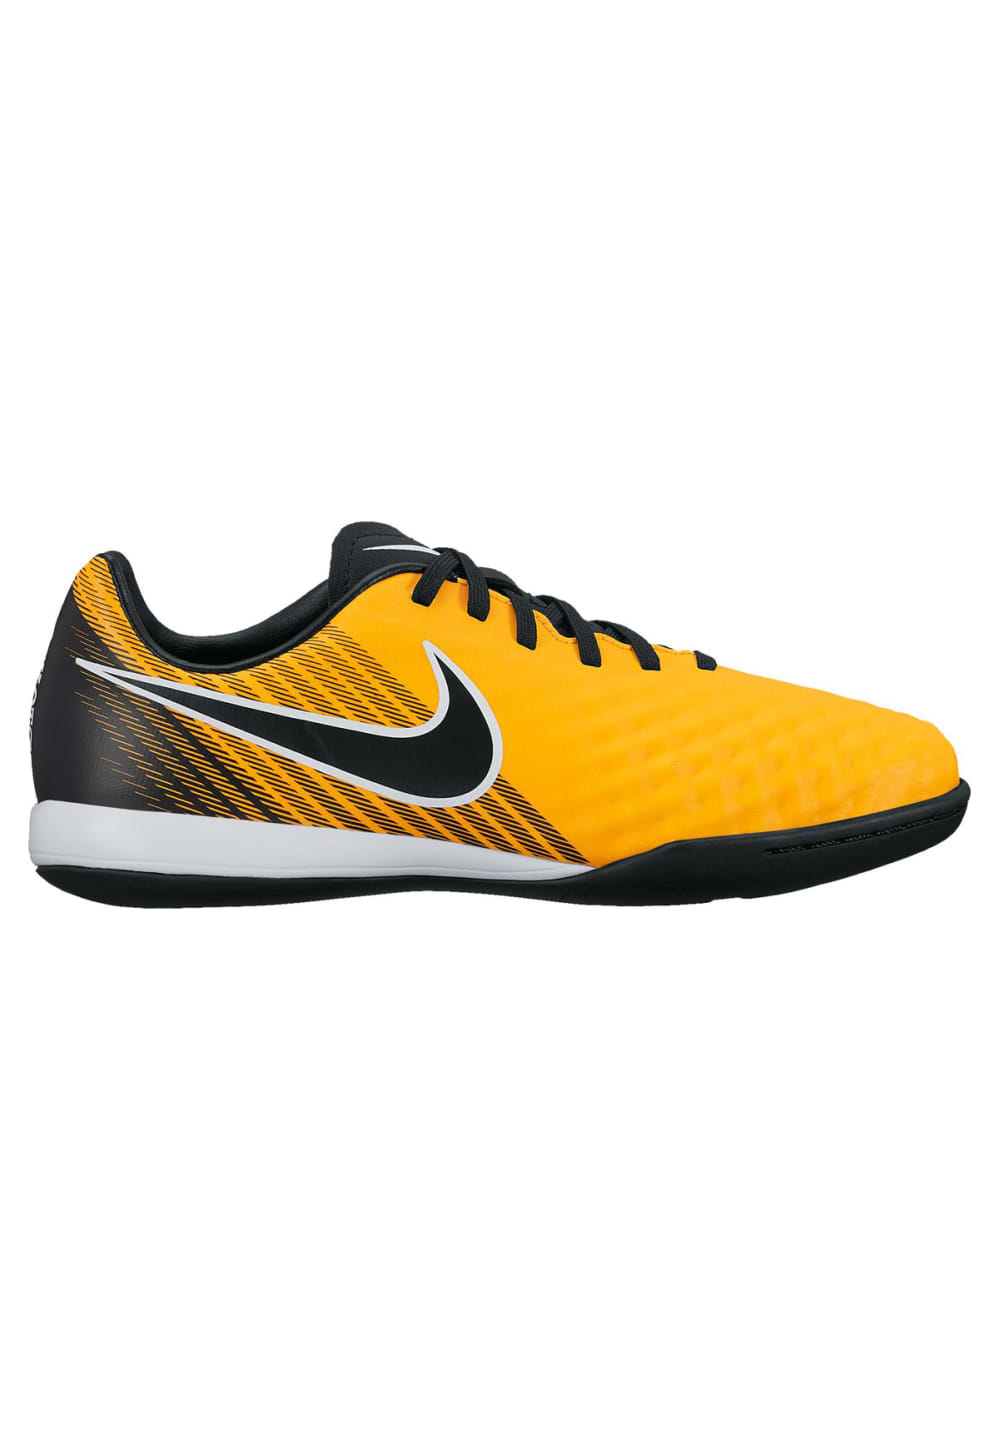 Nike Onda Ii Foot Ic Chaussures JrMagistax De Orange R5Aj4c3Lq